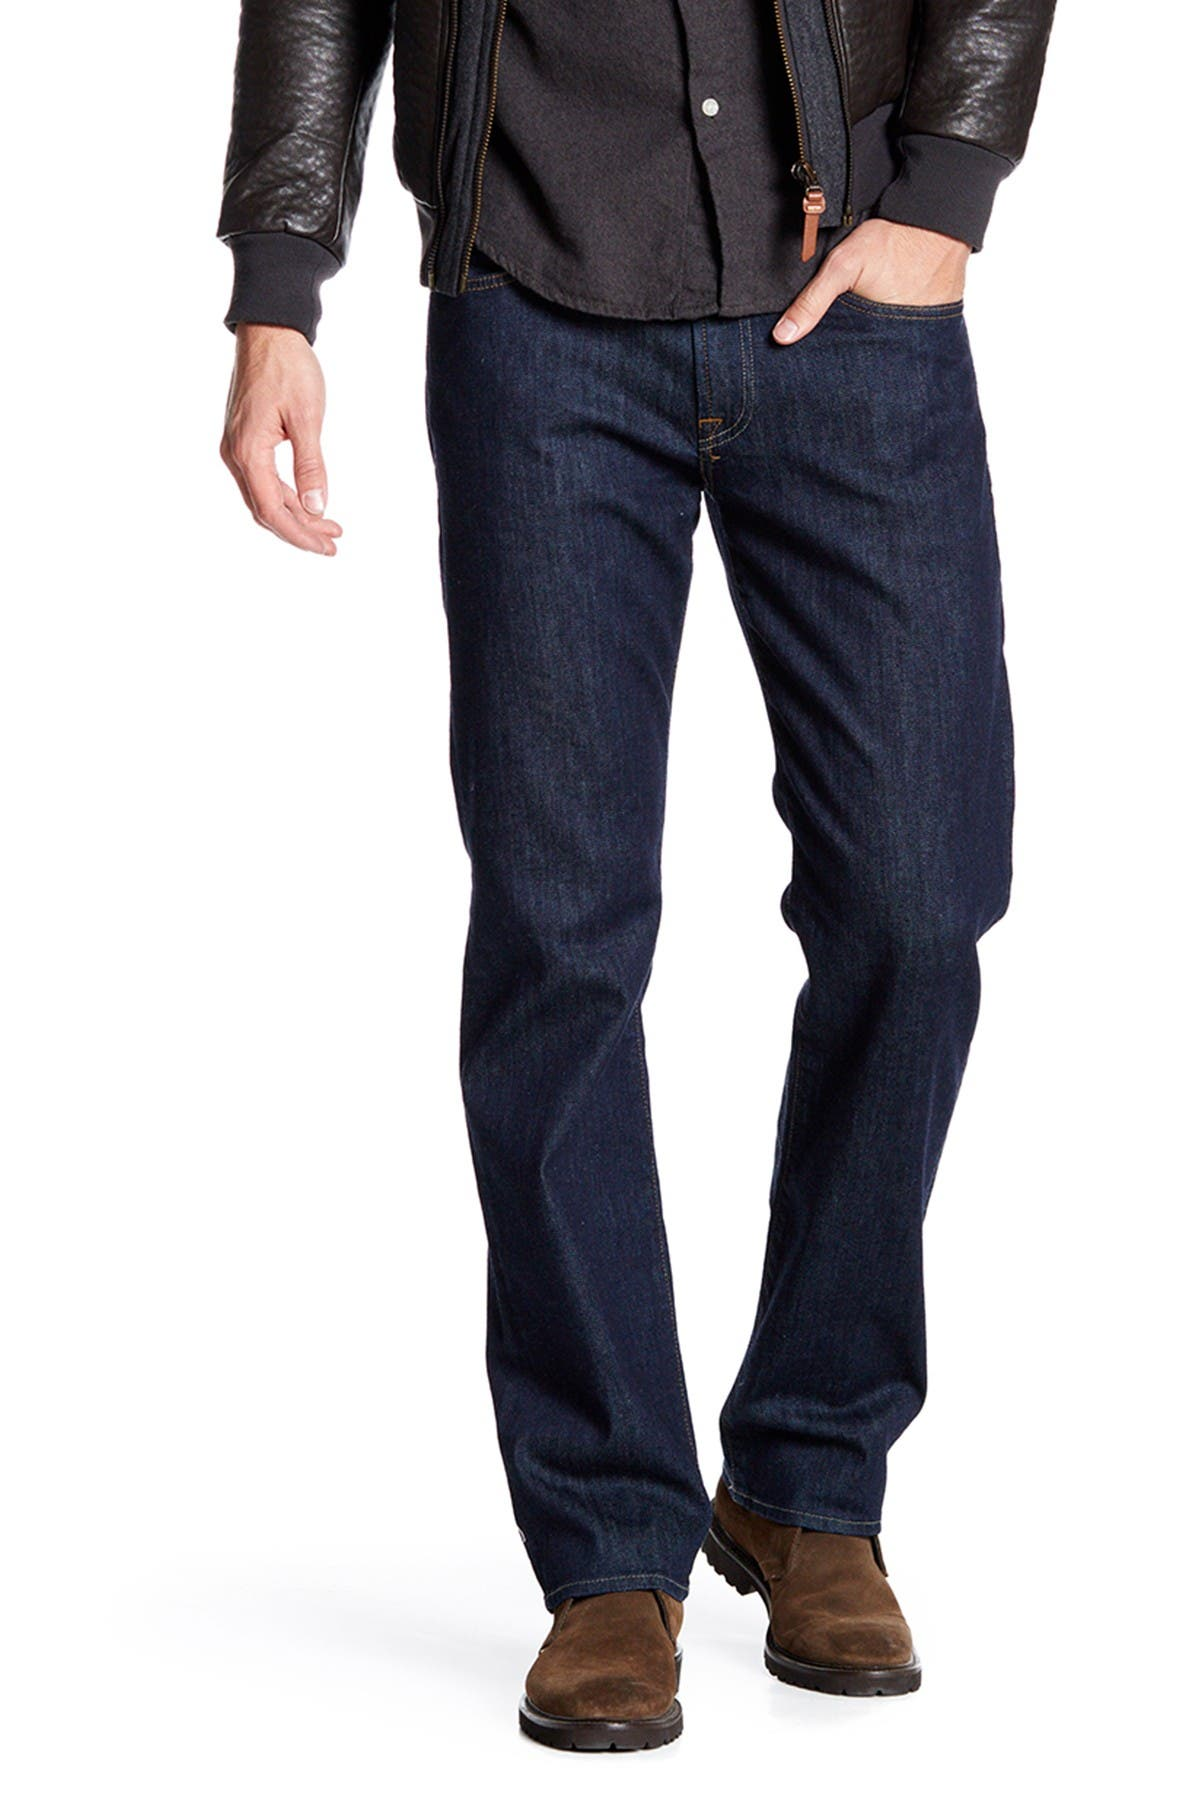 Image of 7 For All Mankind Carsen Easy Straight Jeans